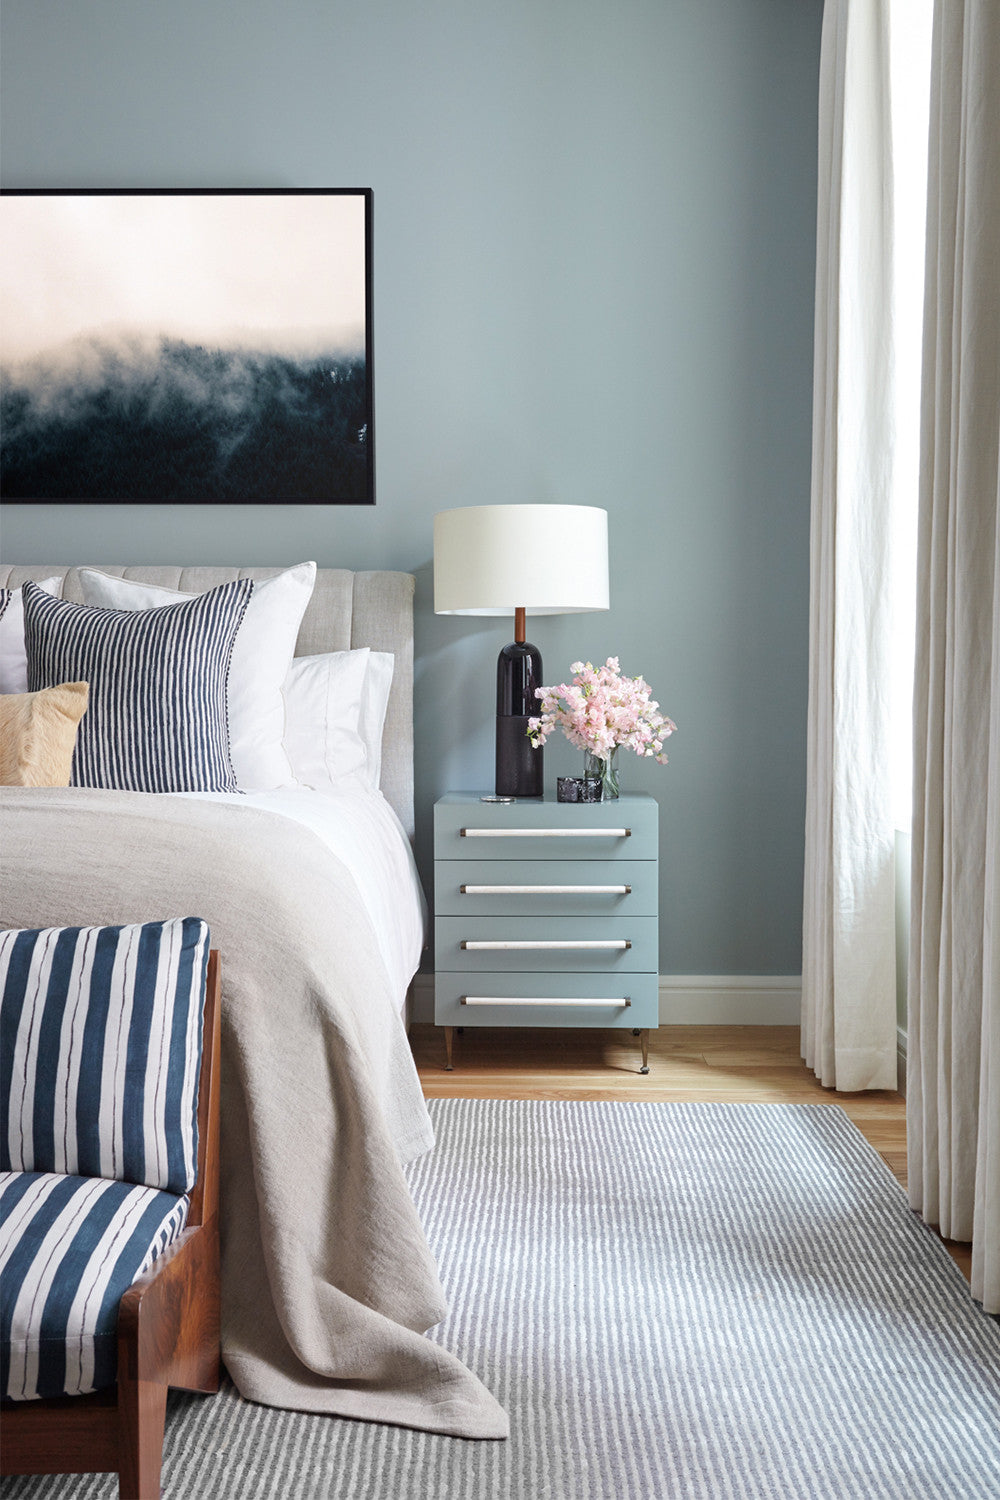 One night stand: the classy version.     Interior Design by Consort. Photo: Reid Rolls